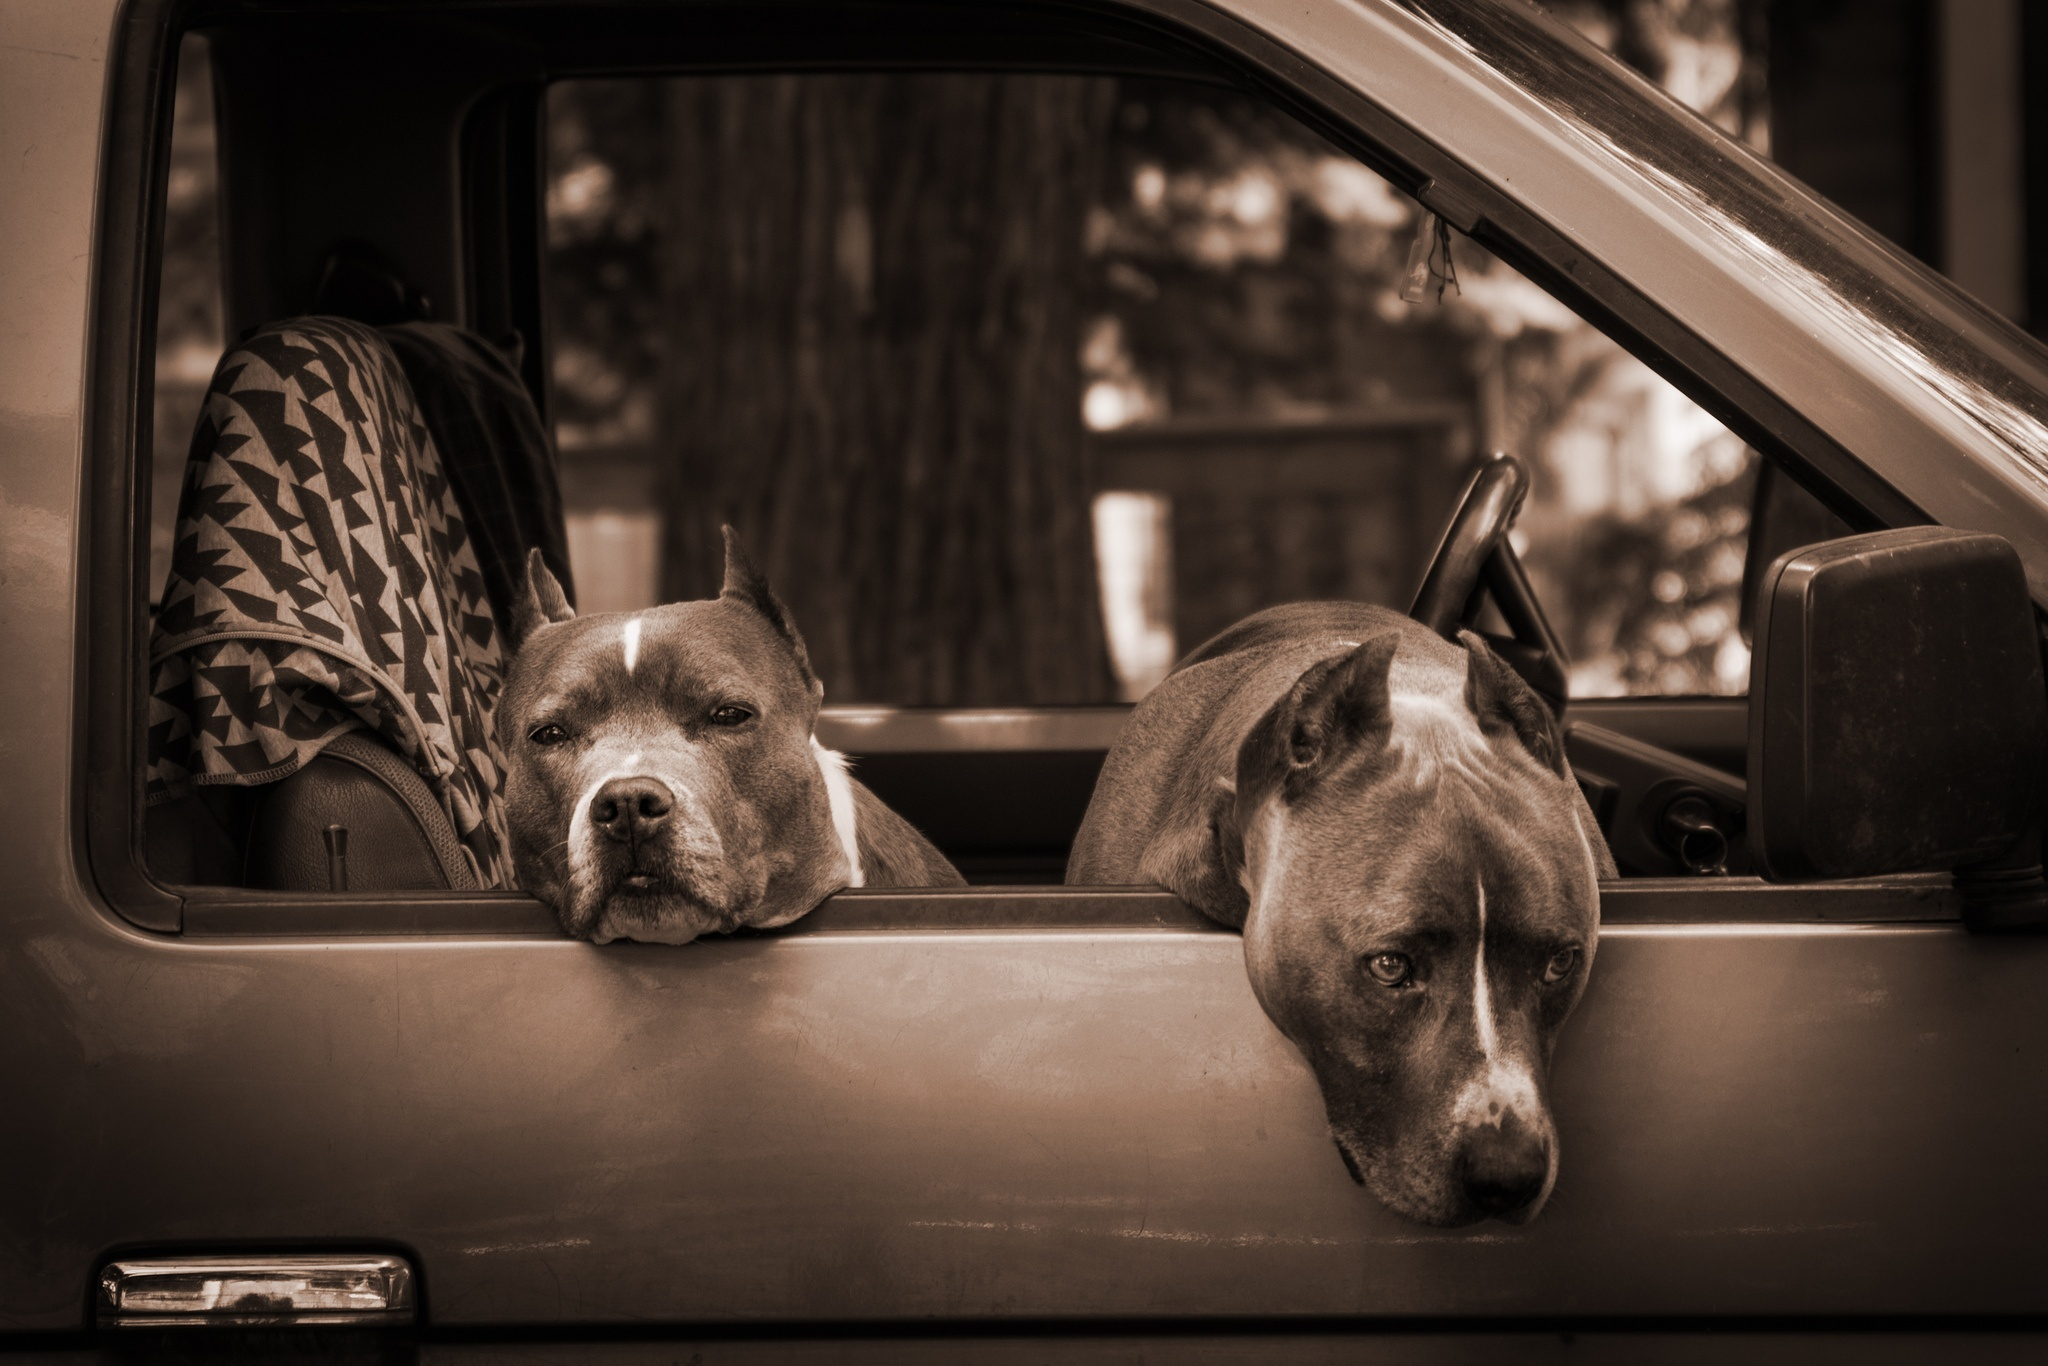 Grand Theft Auto Wallpaper Girl American Pit Bull Terrier Hd Wallpapers